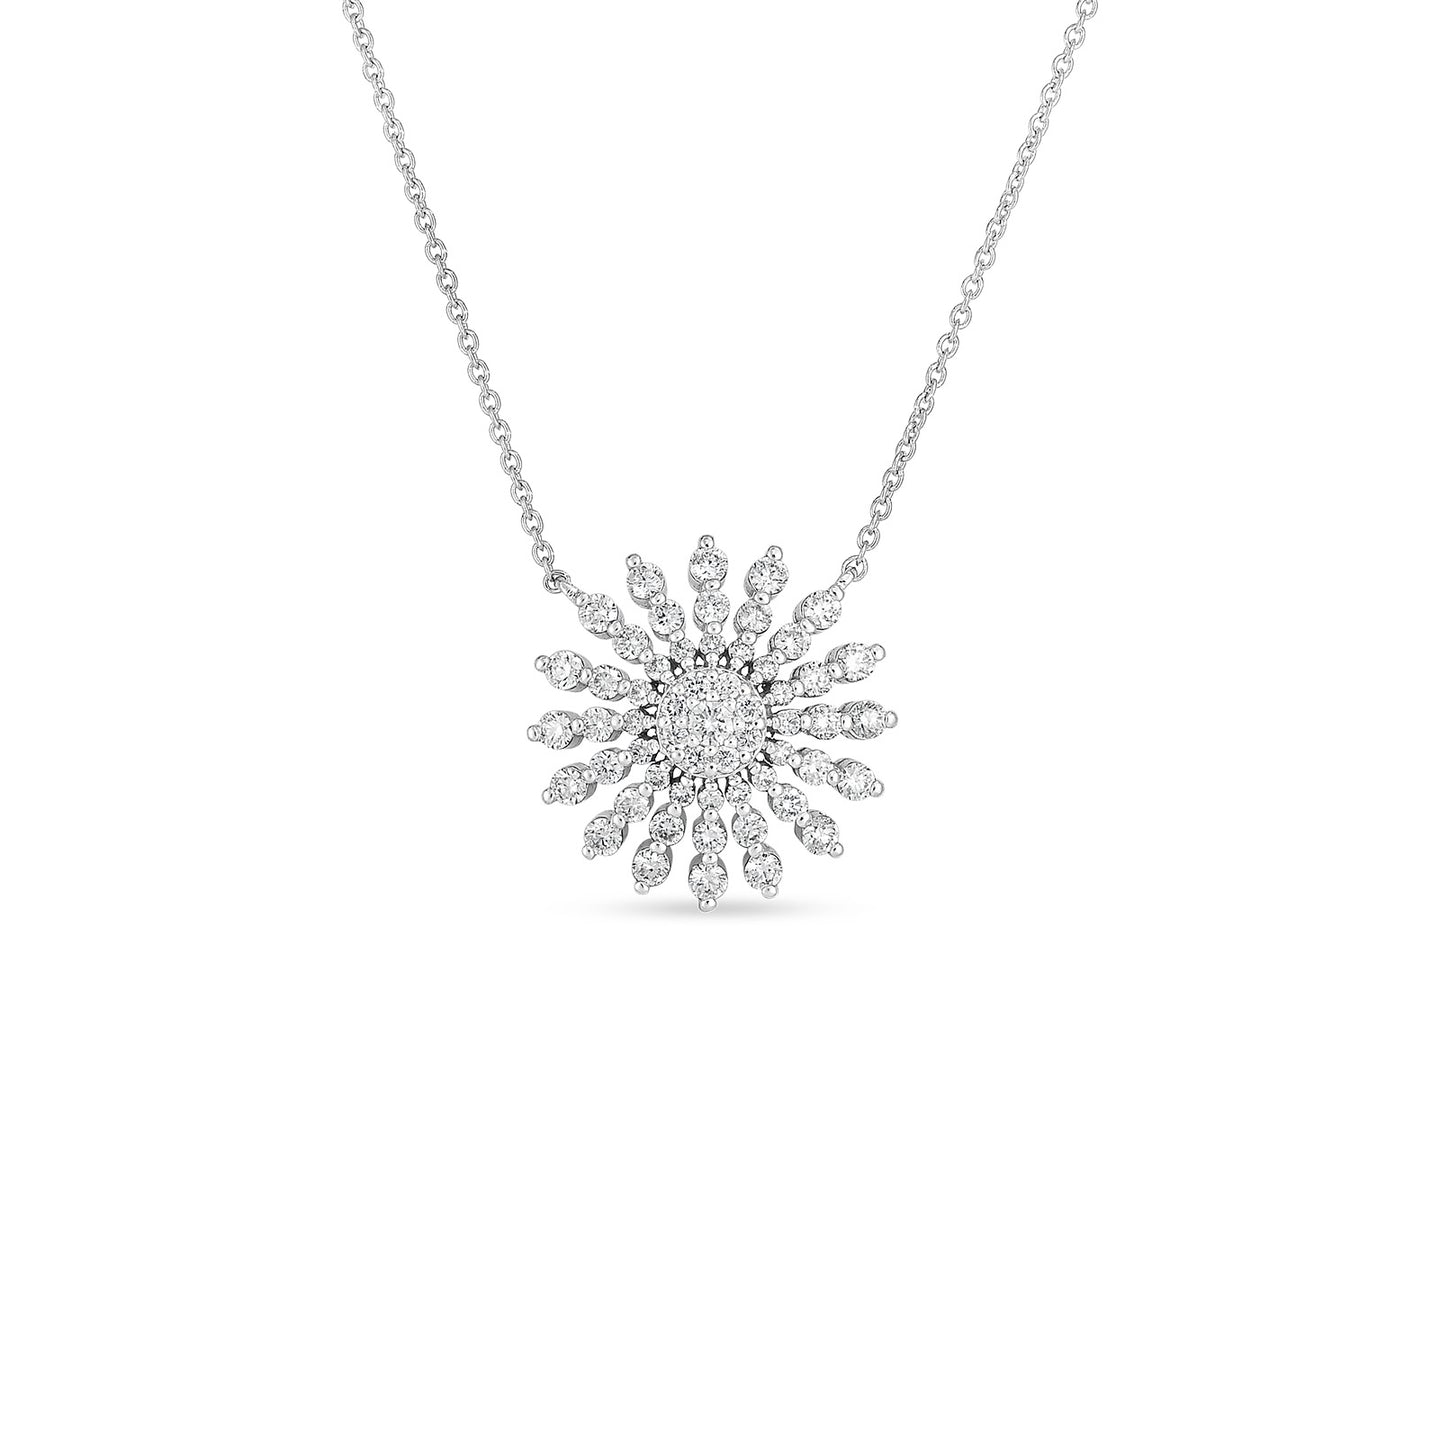 Roberto Coin Tiny Treasures 18K White Gold Diamond Sunburst Necklace